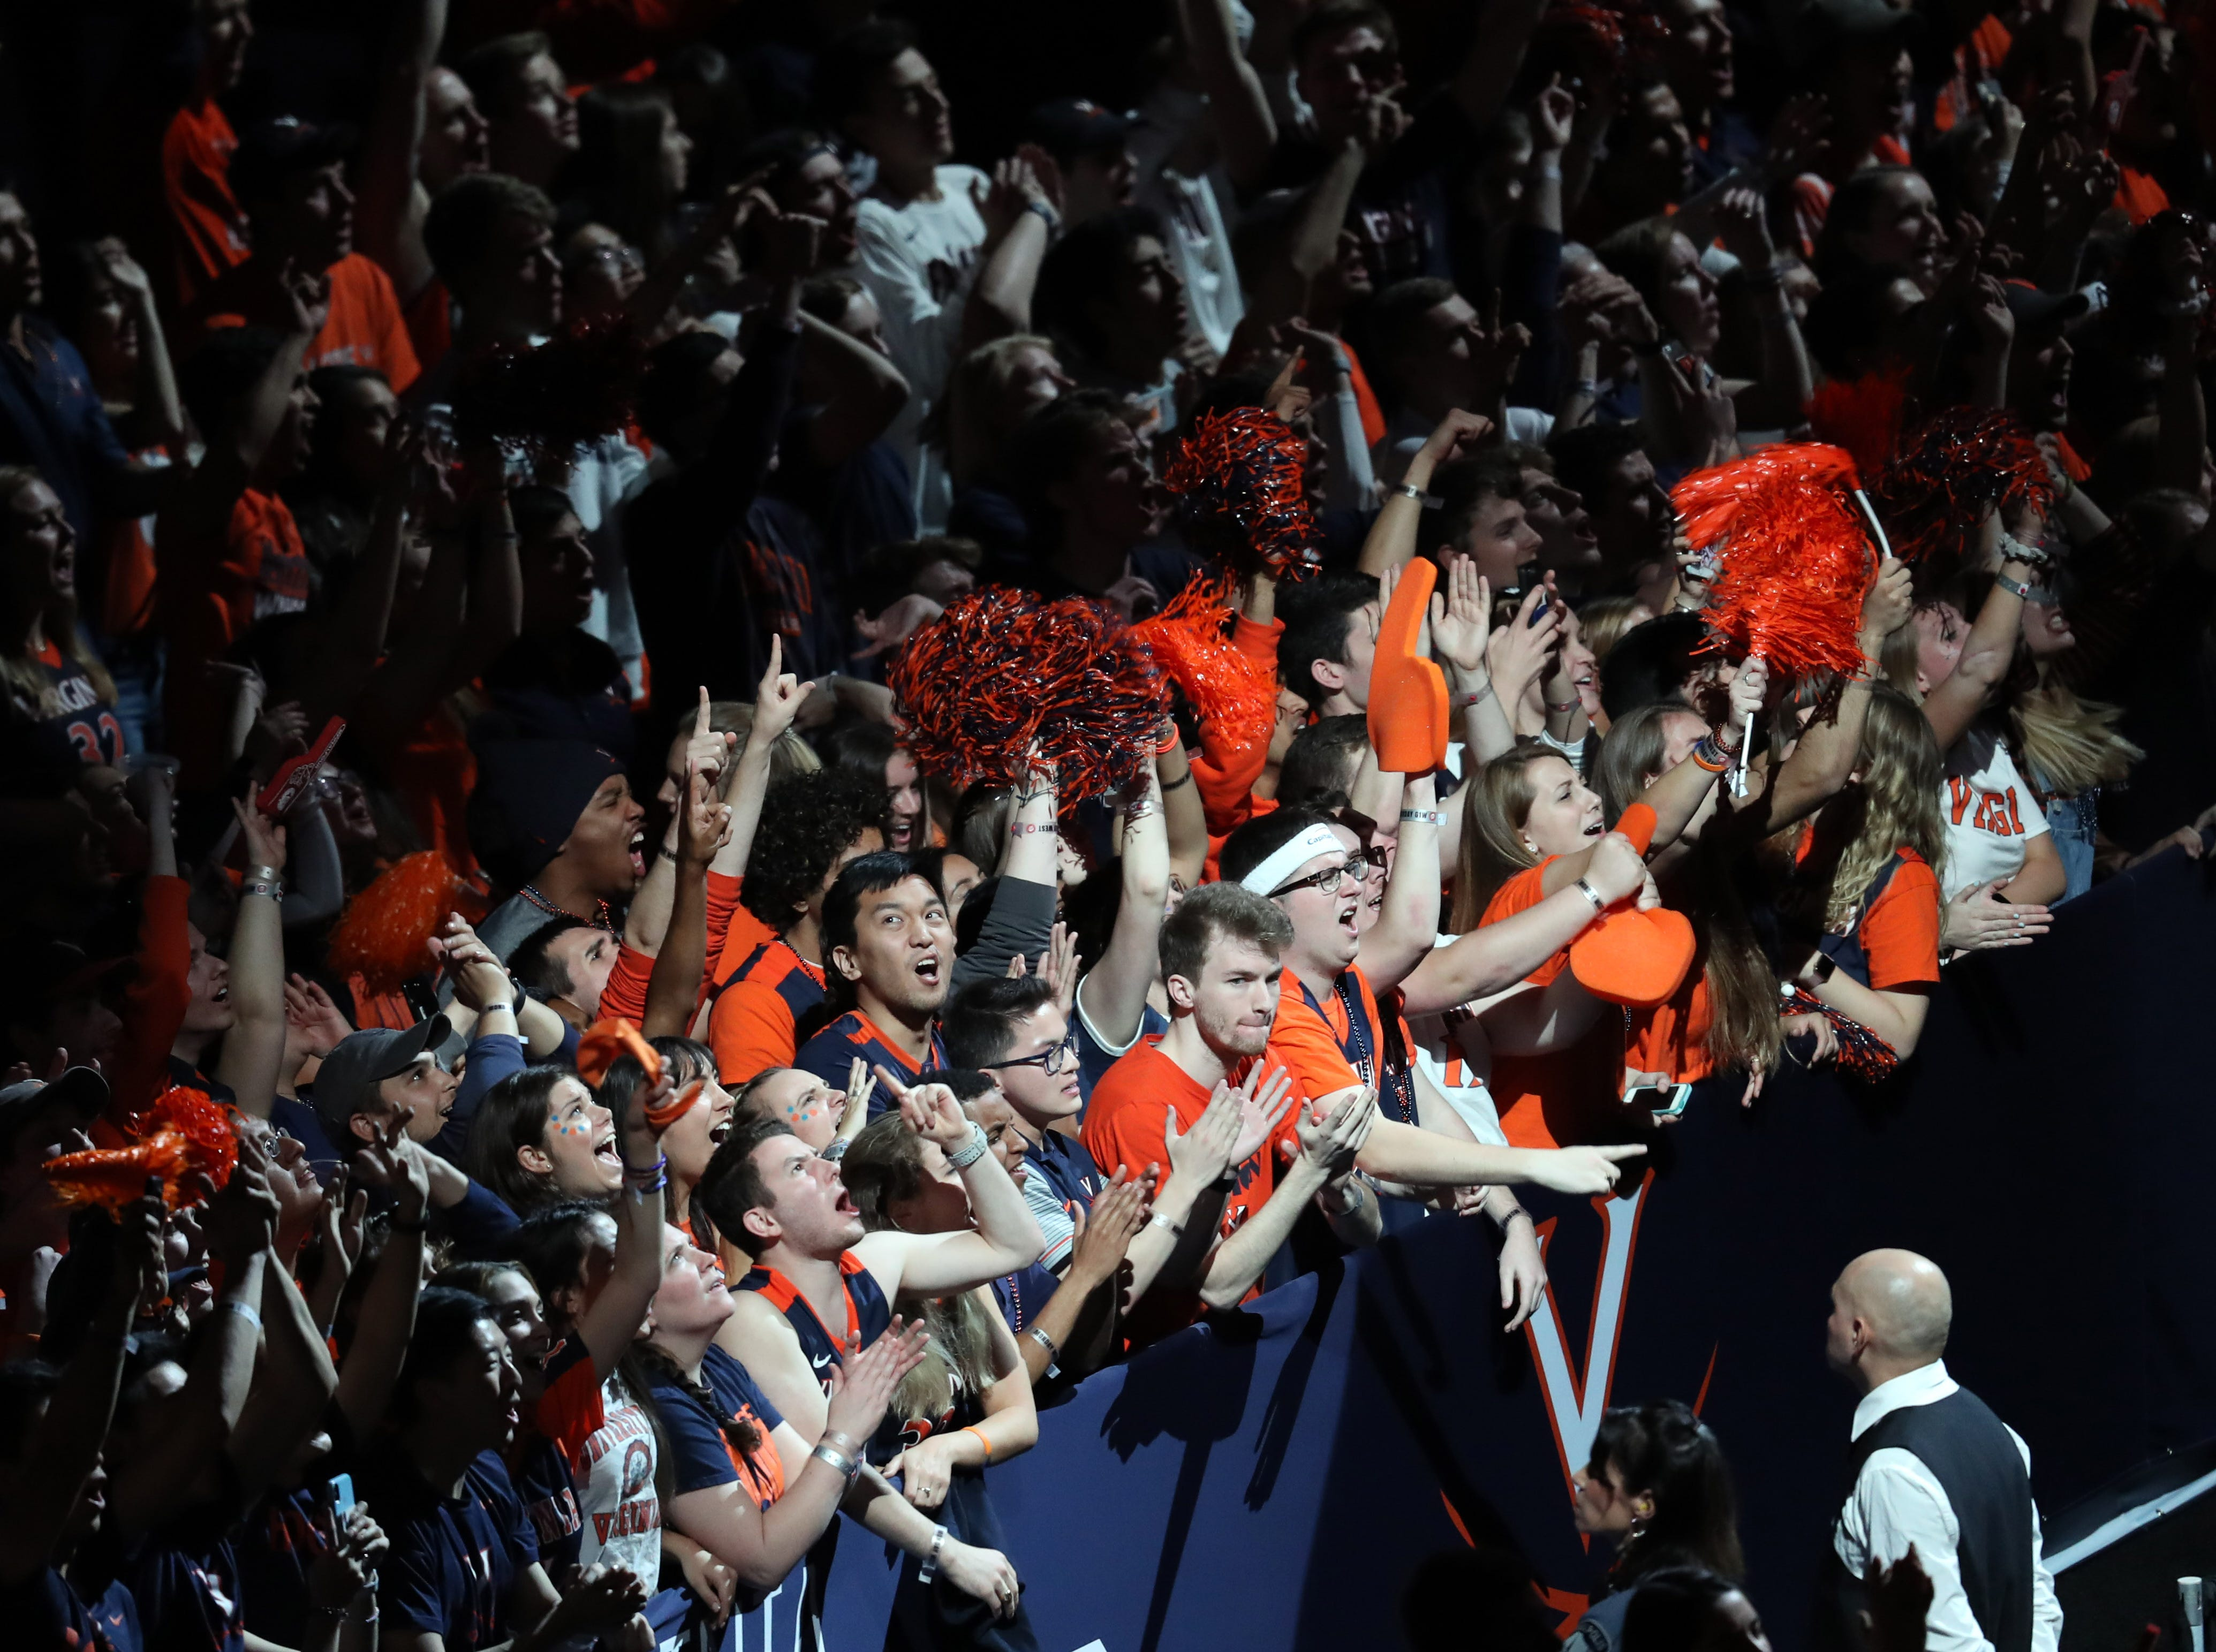 Apr 8, 2019; Minneapolis, MN, USA; Virginia Cavaliers fans cheer before the championship game of the 2019 men's Final Four against the Texas Tech Red Raiders at US Bank Stadium. Mandatory Credit: Brace Hemmelgarn-USA TODAY Sports